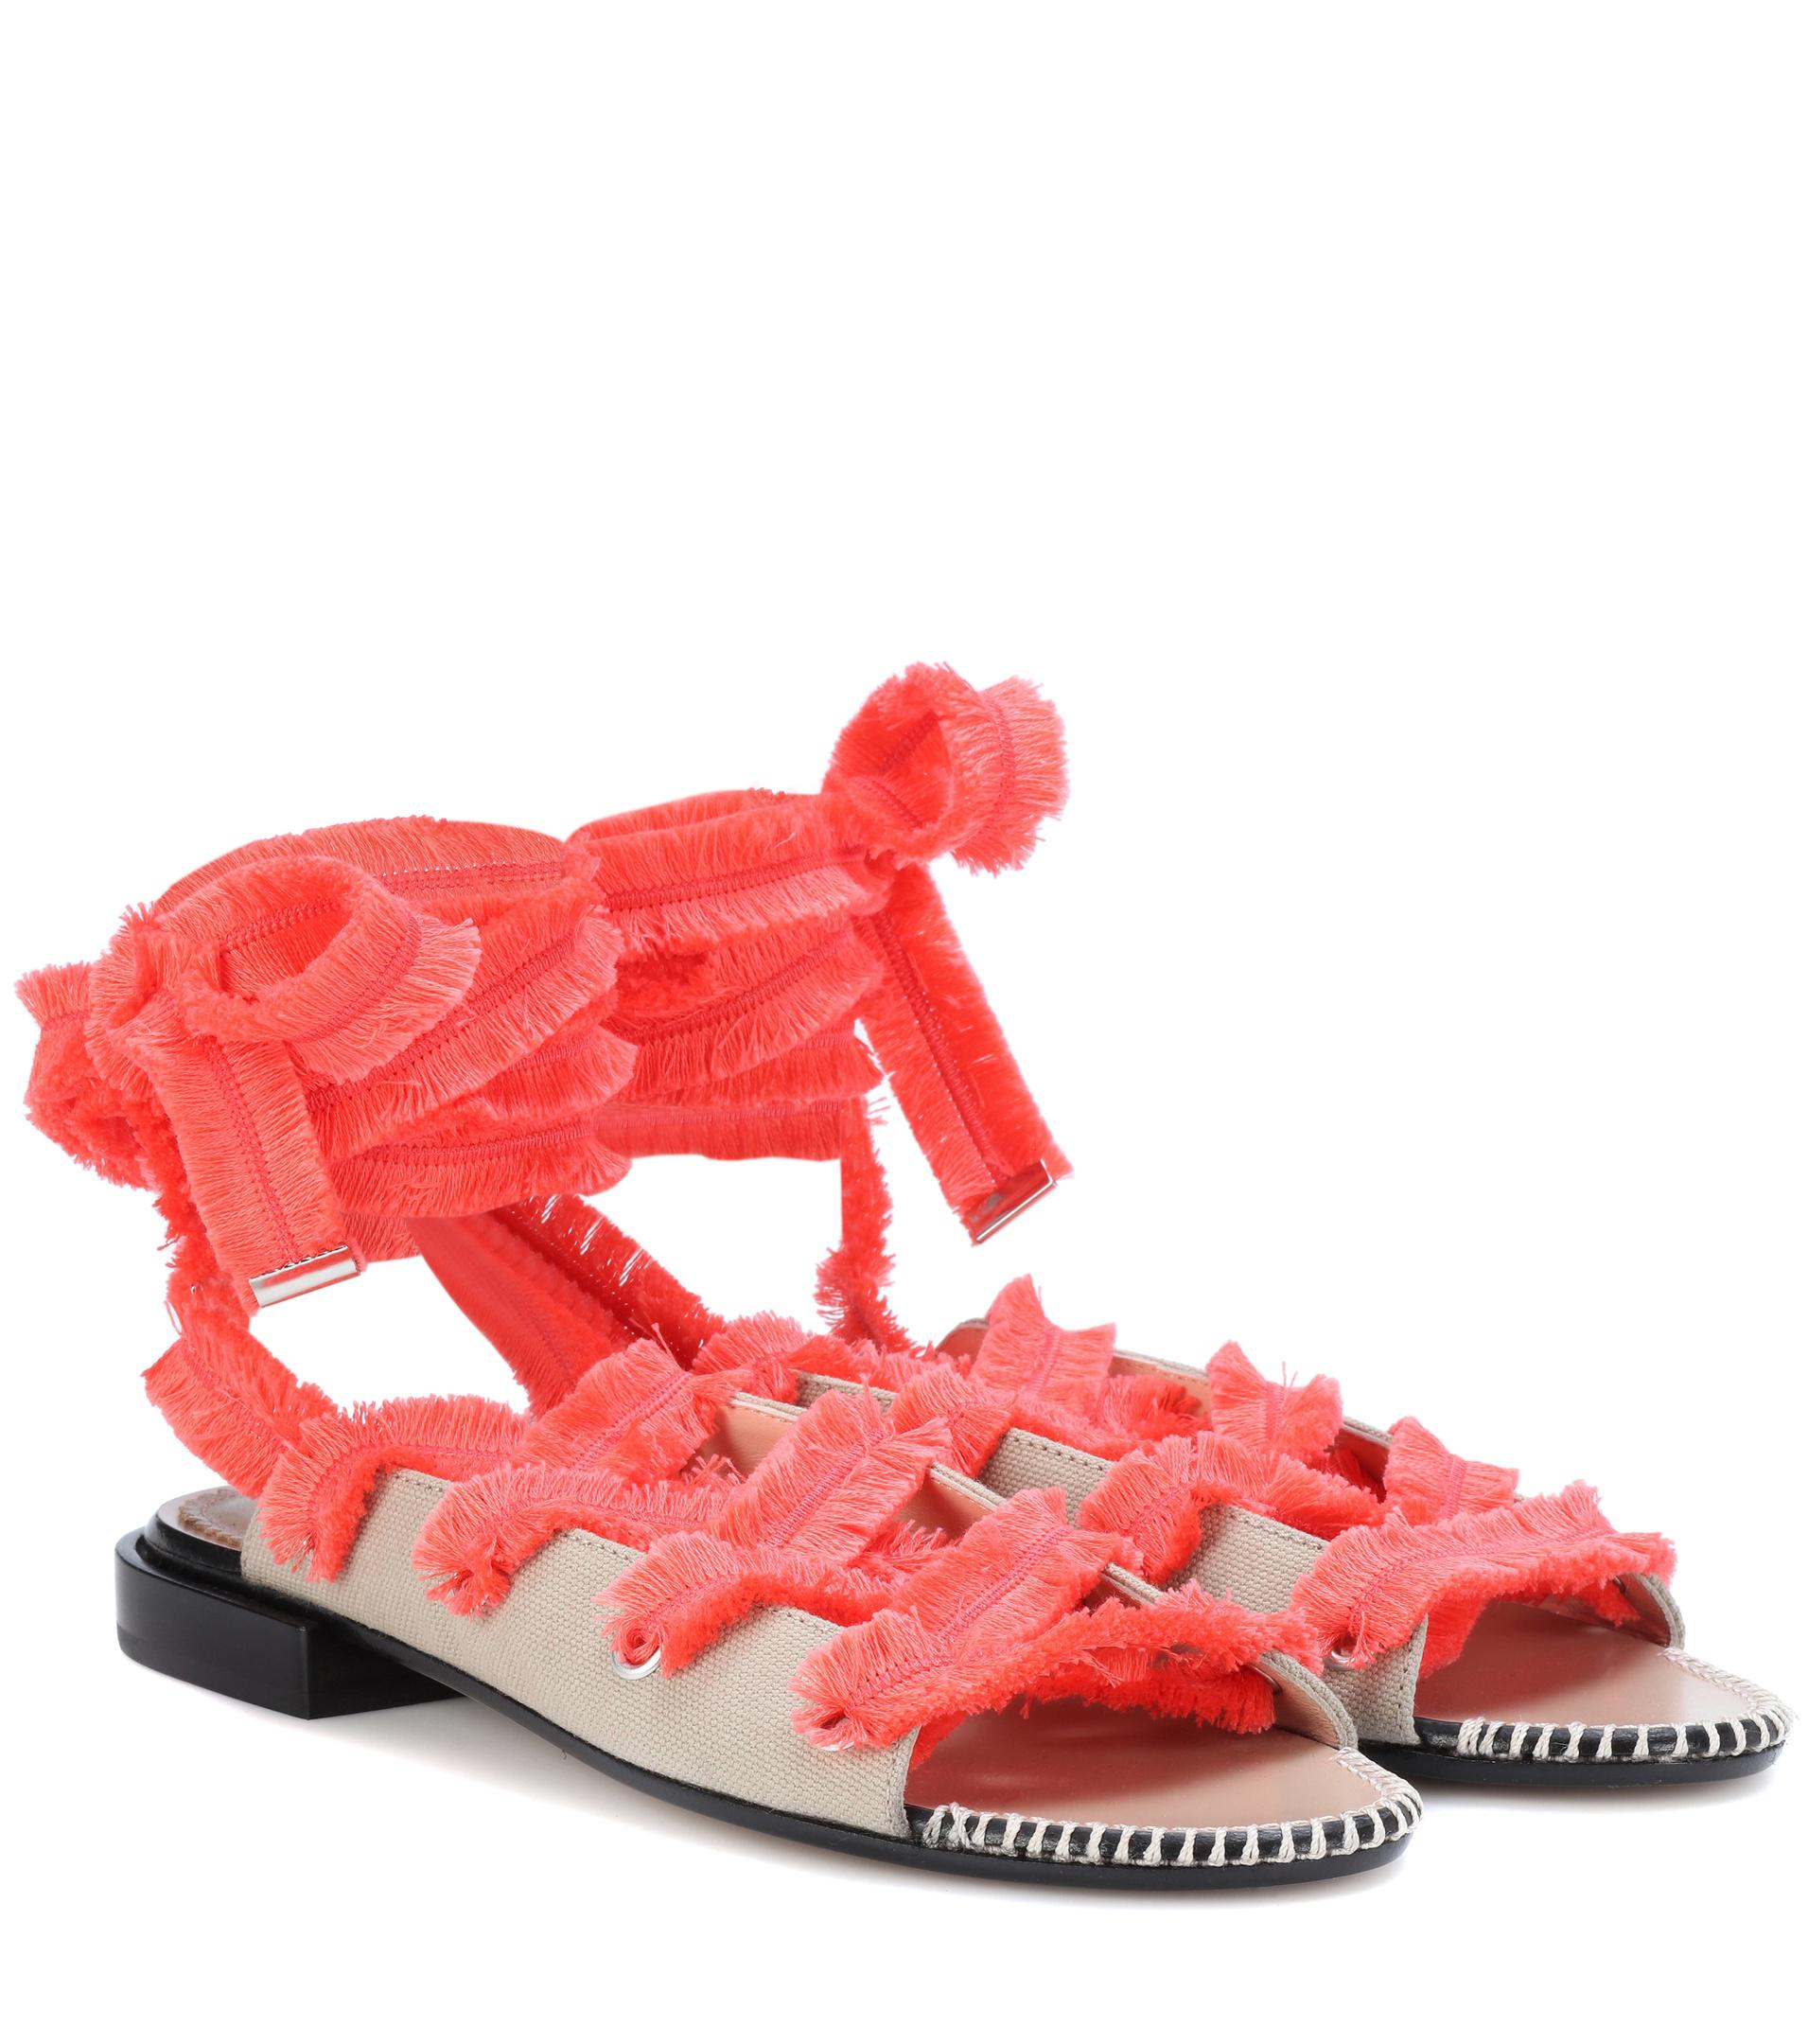 Discount Manchester Great Sale Altuzarra Espadrille sandals Pay With Paypal Cheap Online Outlet Supply Sneakernews Cheap Price Good Selling Sale Online Y5lag